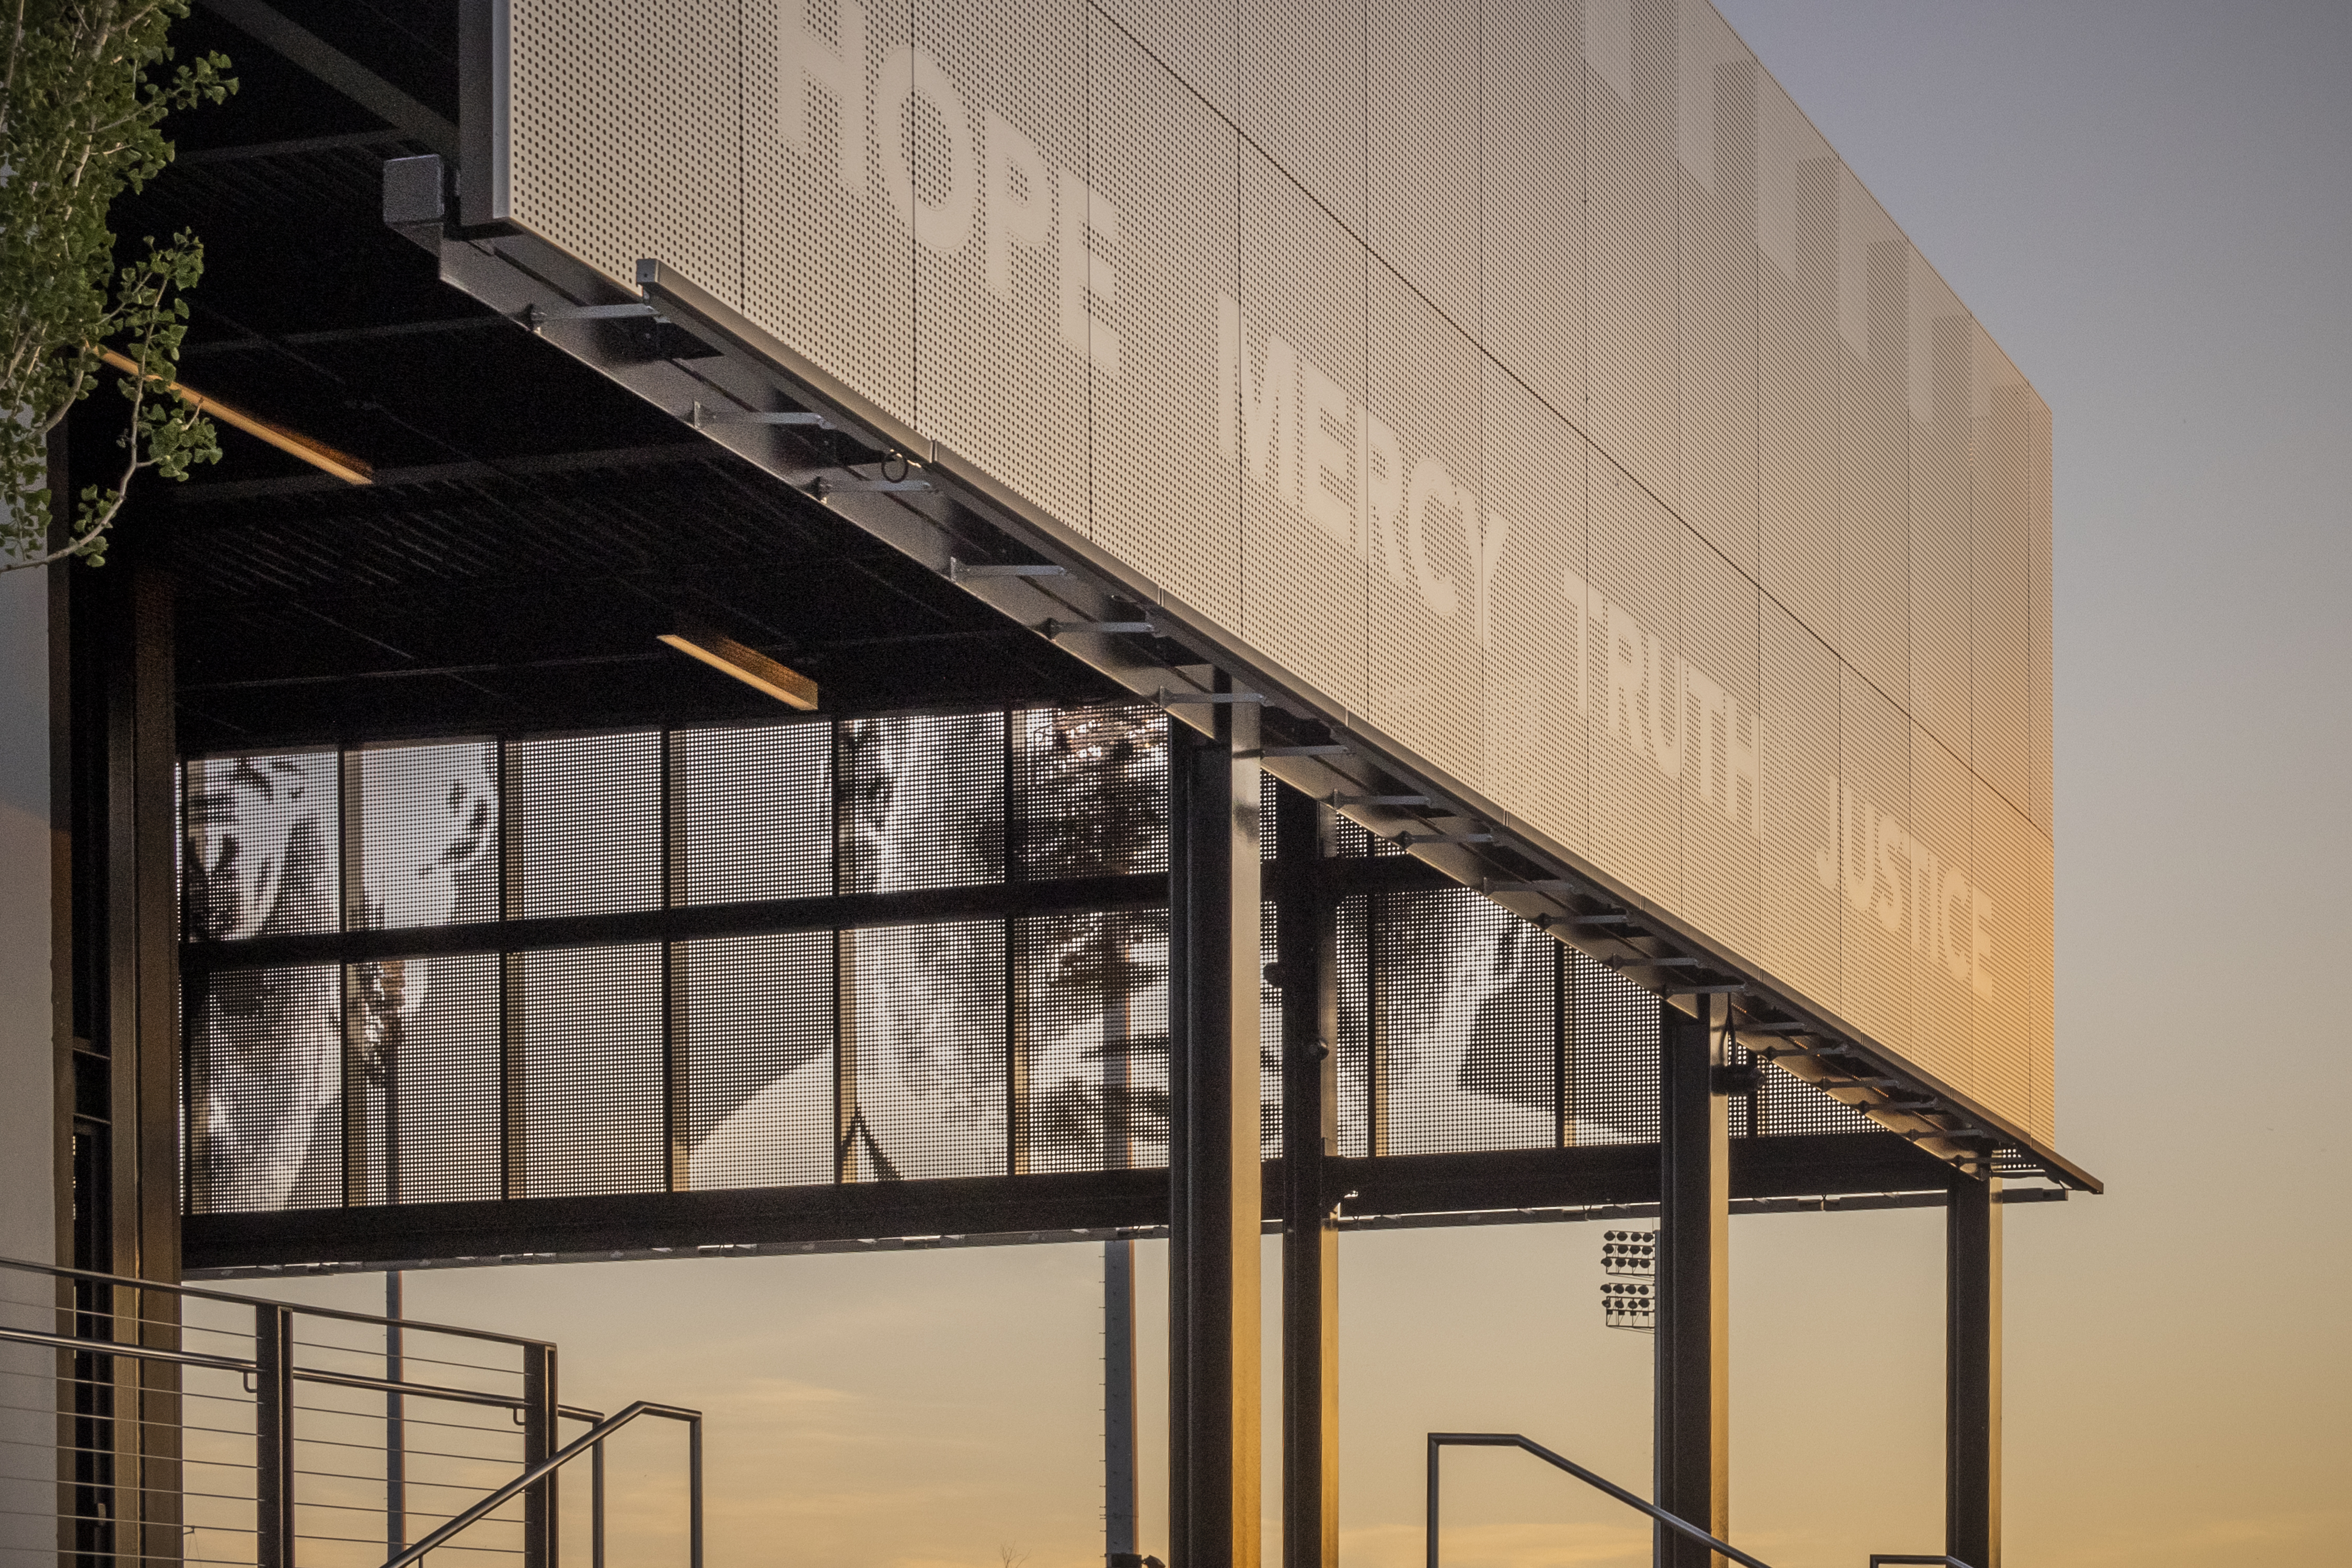 The ImageWall screen floats above the patio of the Legacy Pavilion and looks out over the park grounds.